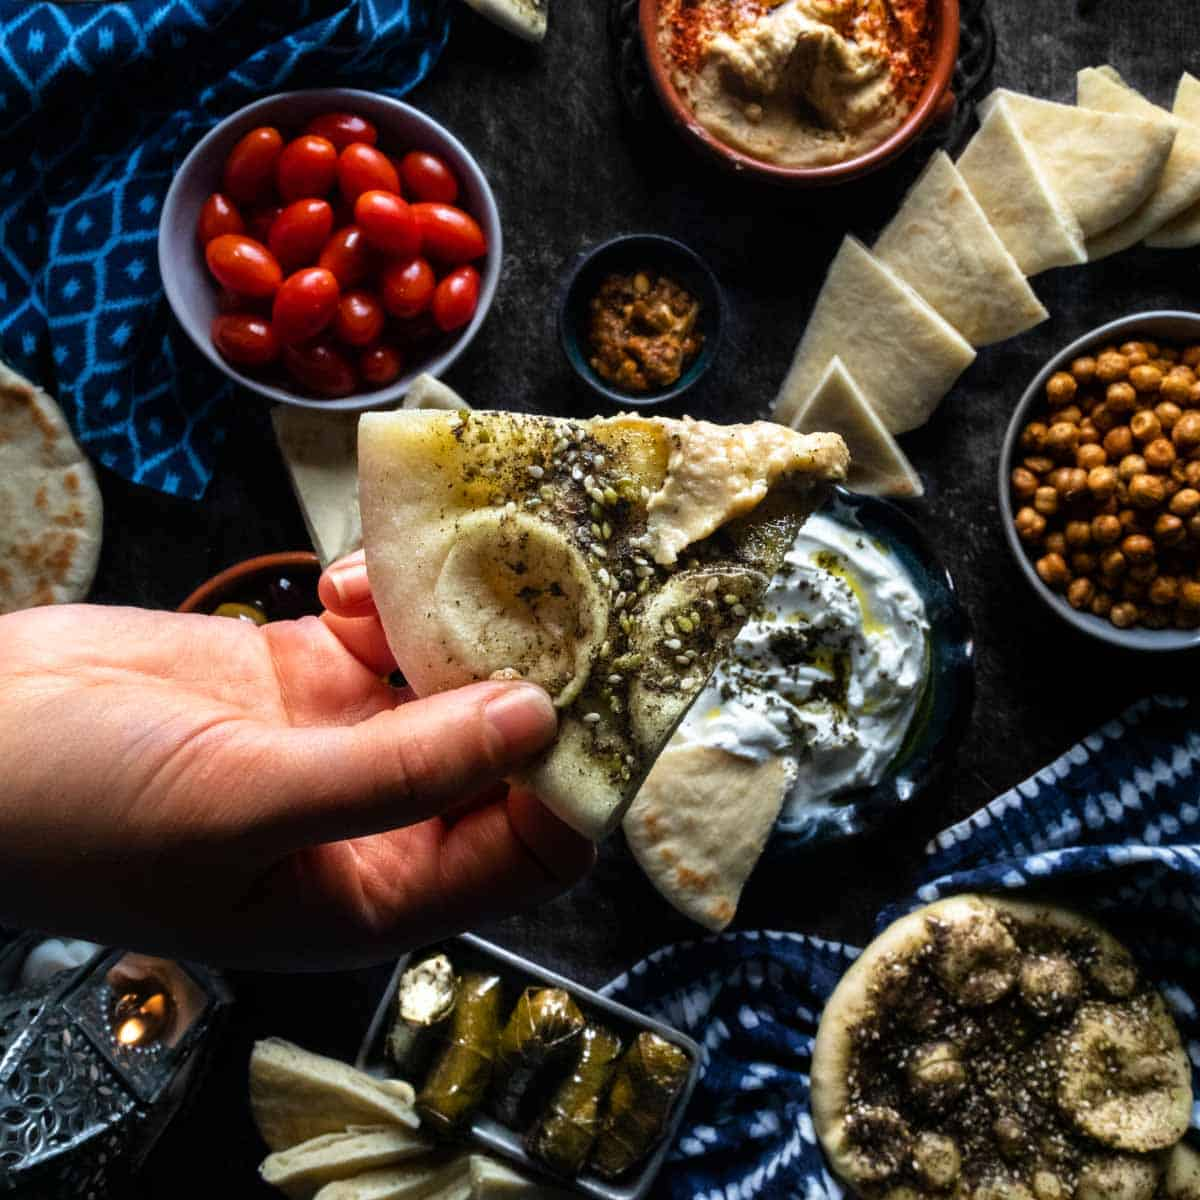 A triangle of za'atar spiced pita bread being held above a colorful spread of meze, olives, chickpeas and dolmas